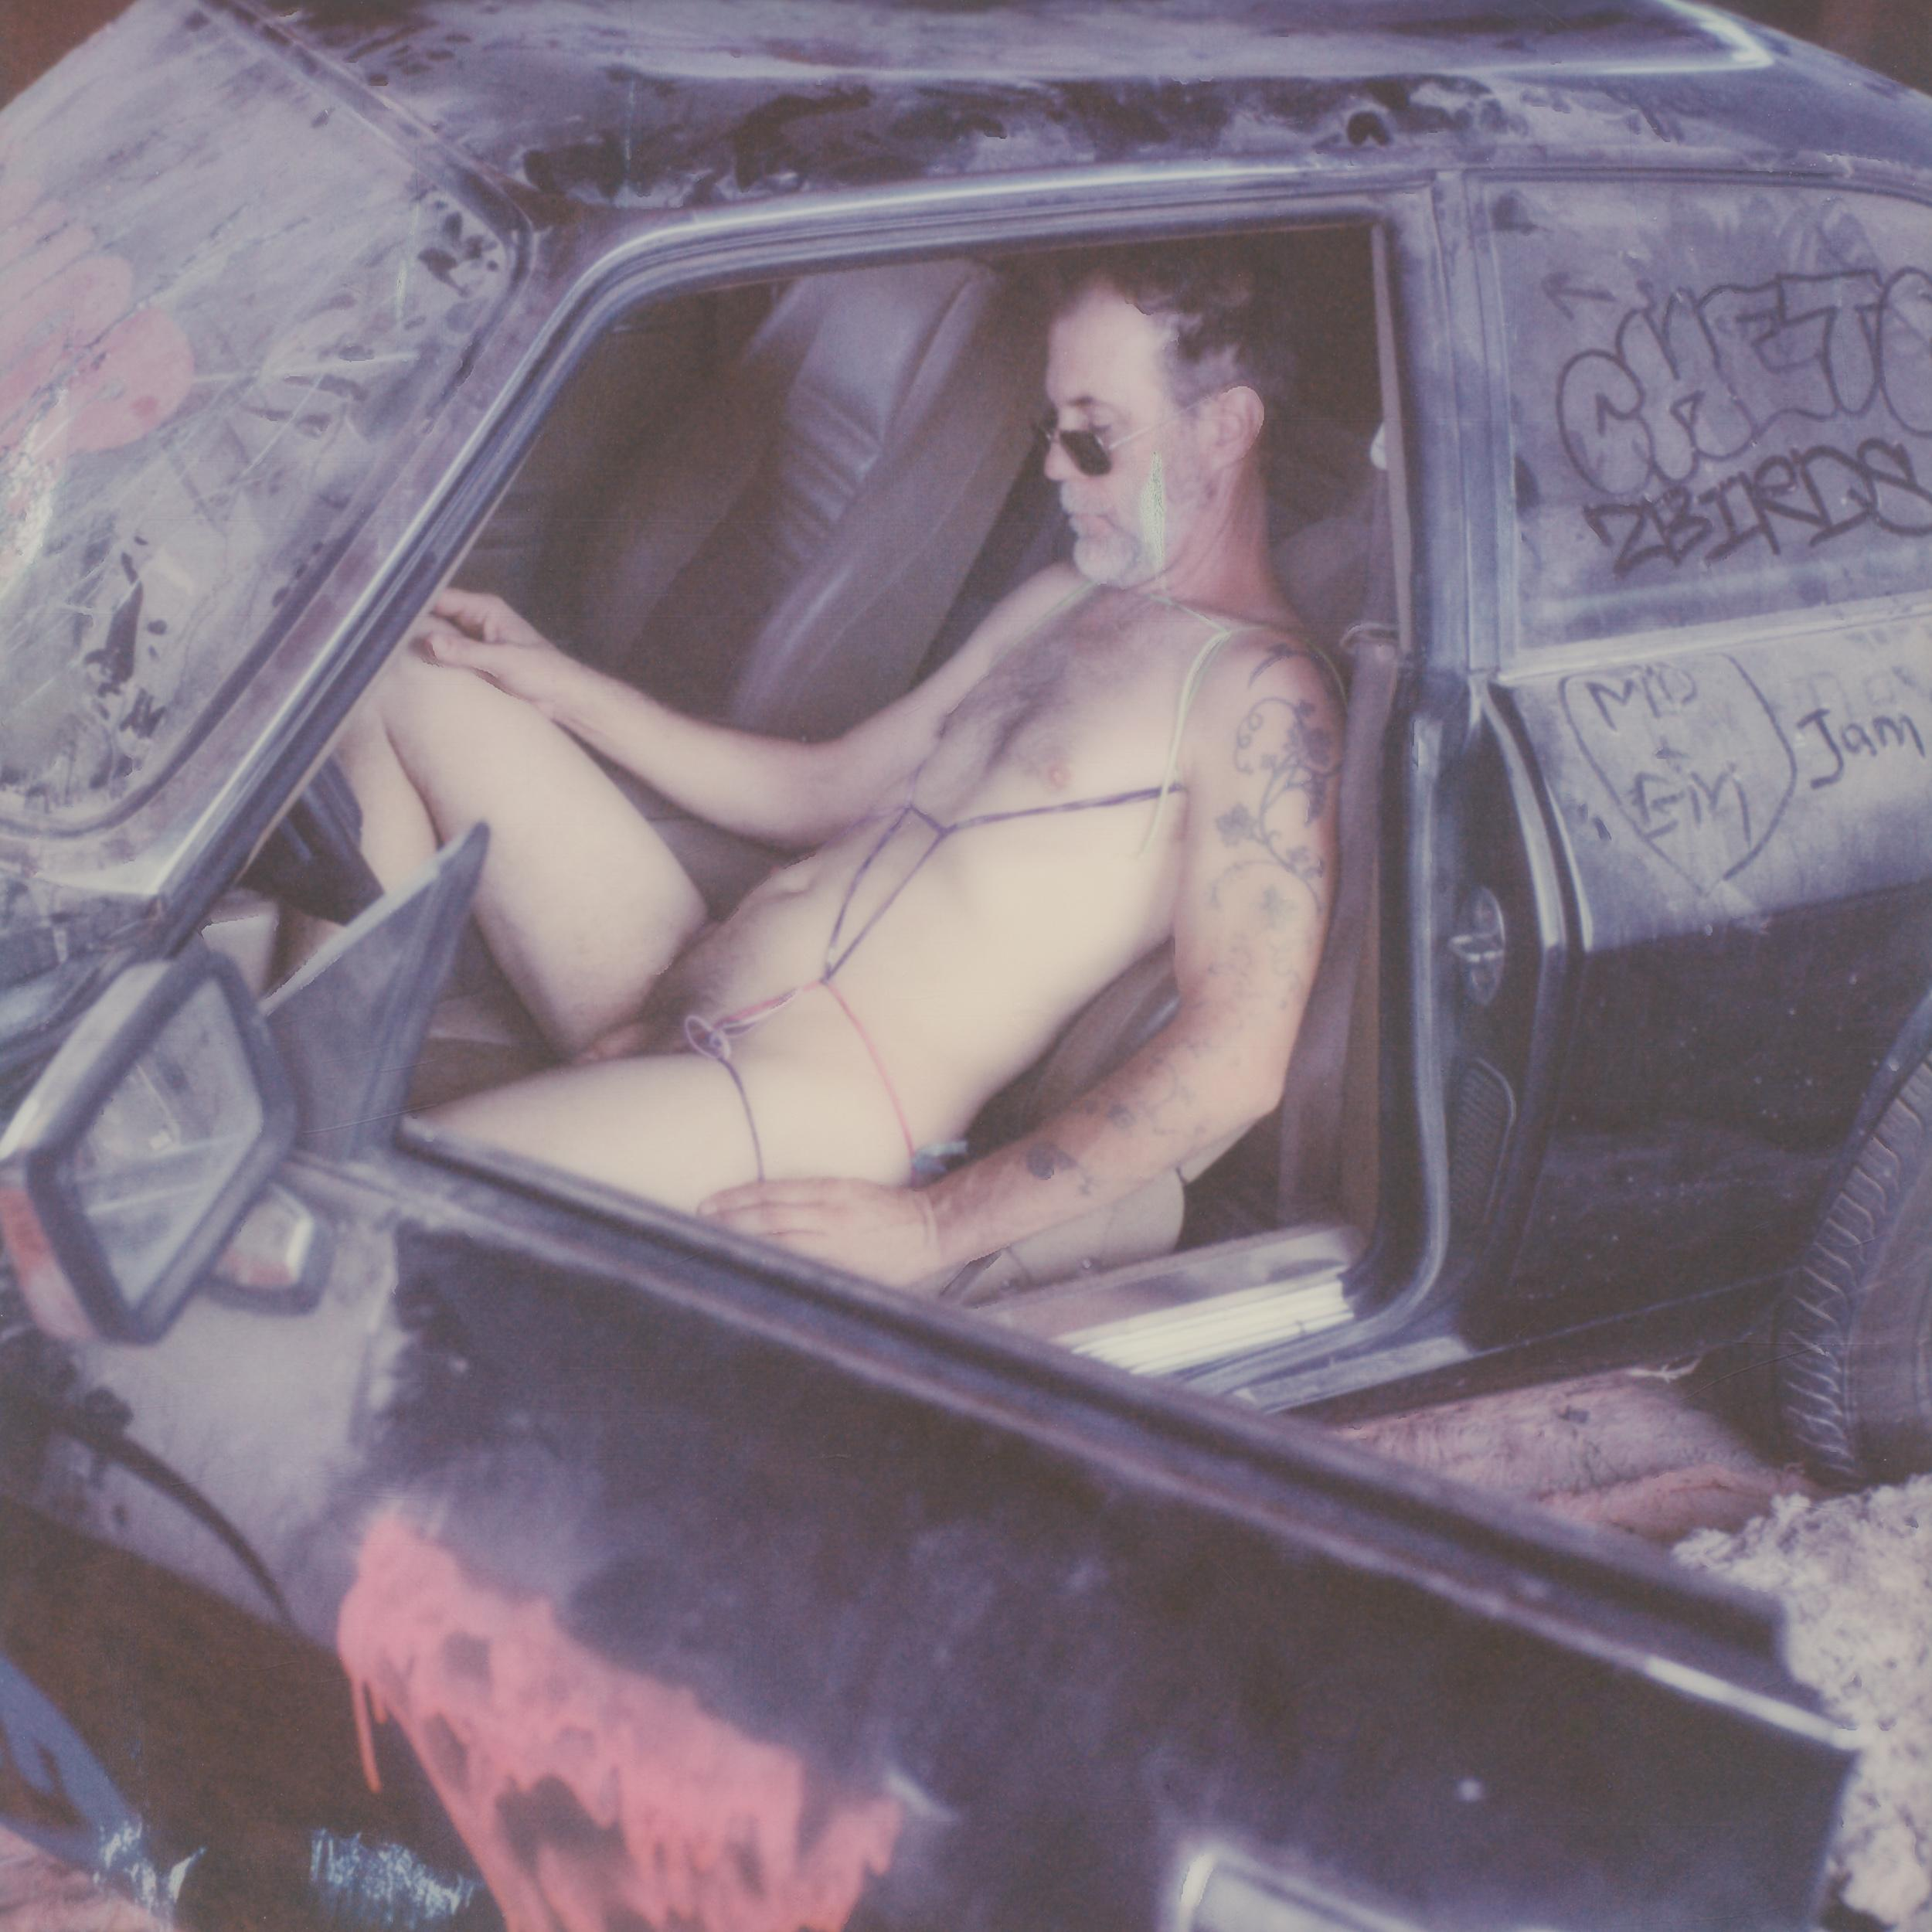 Dude (where's my car) from The crazy Adventures of David C. - Contemporary, Nude